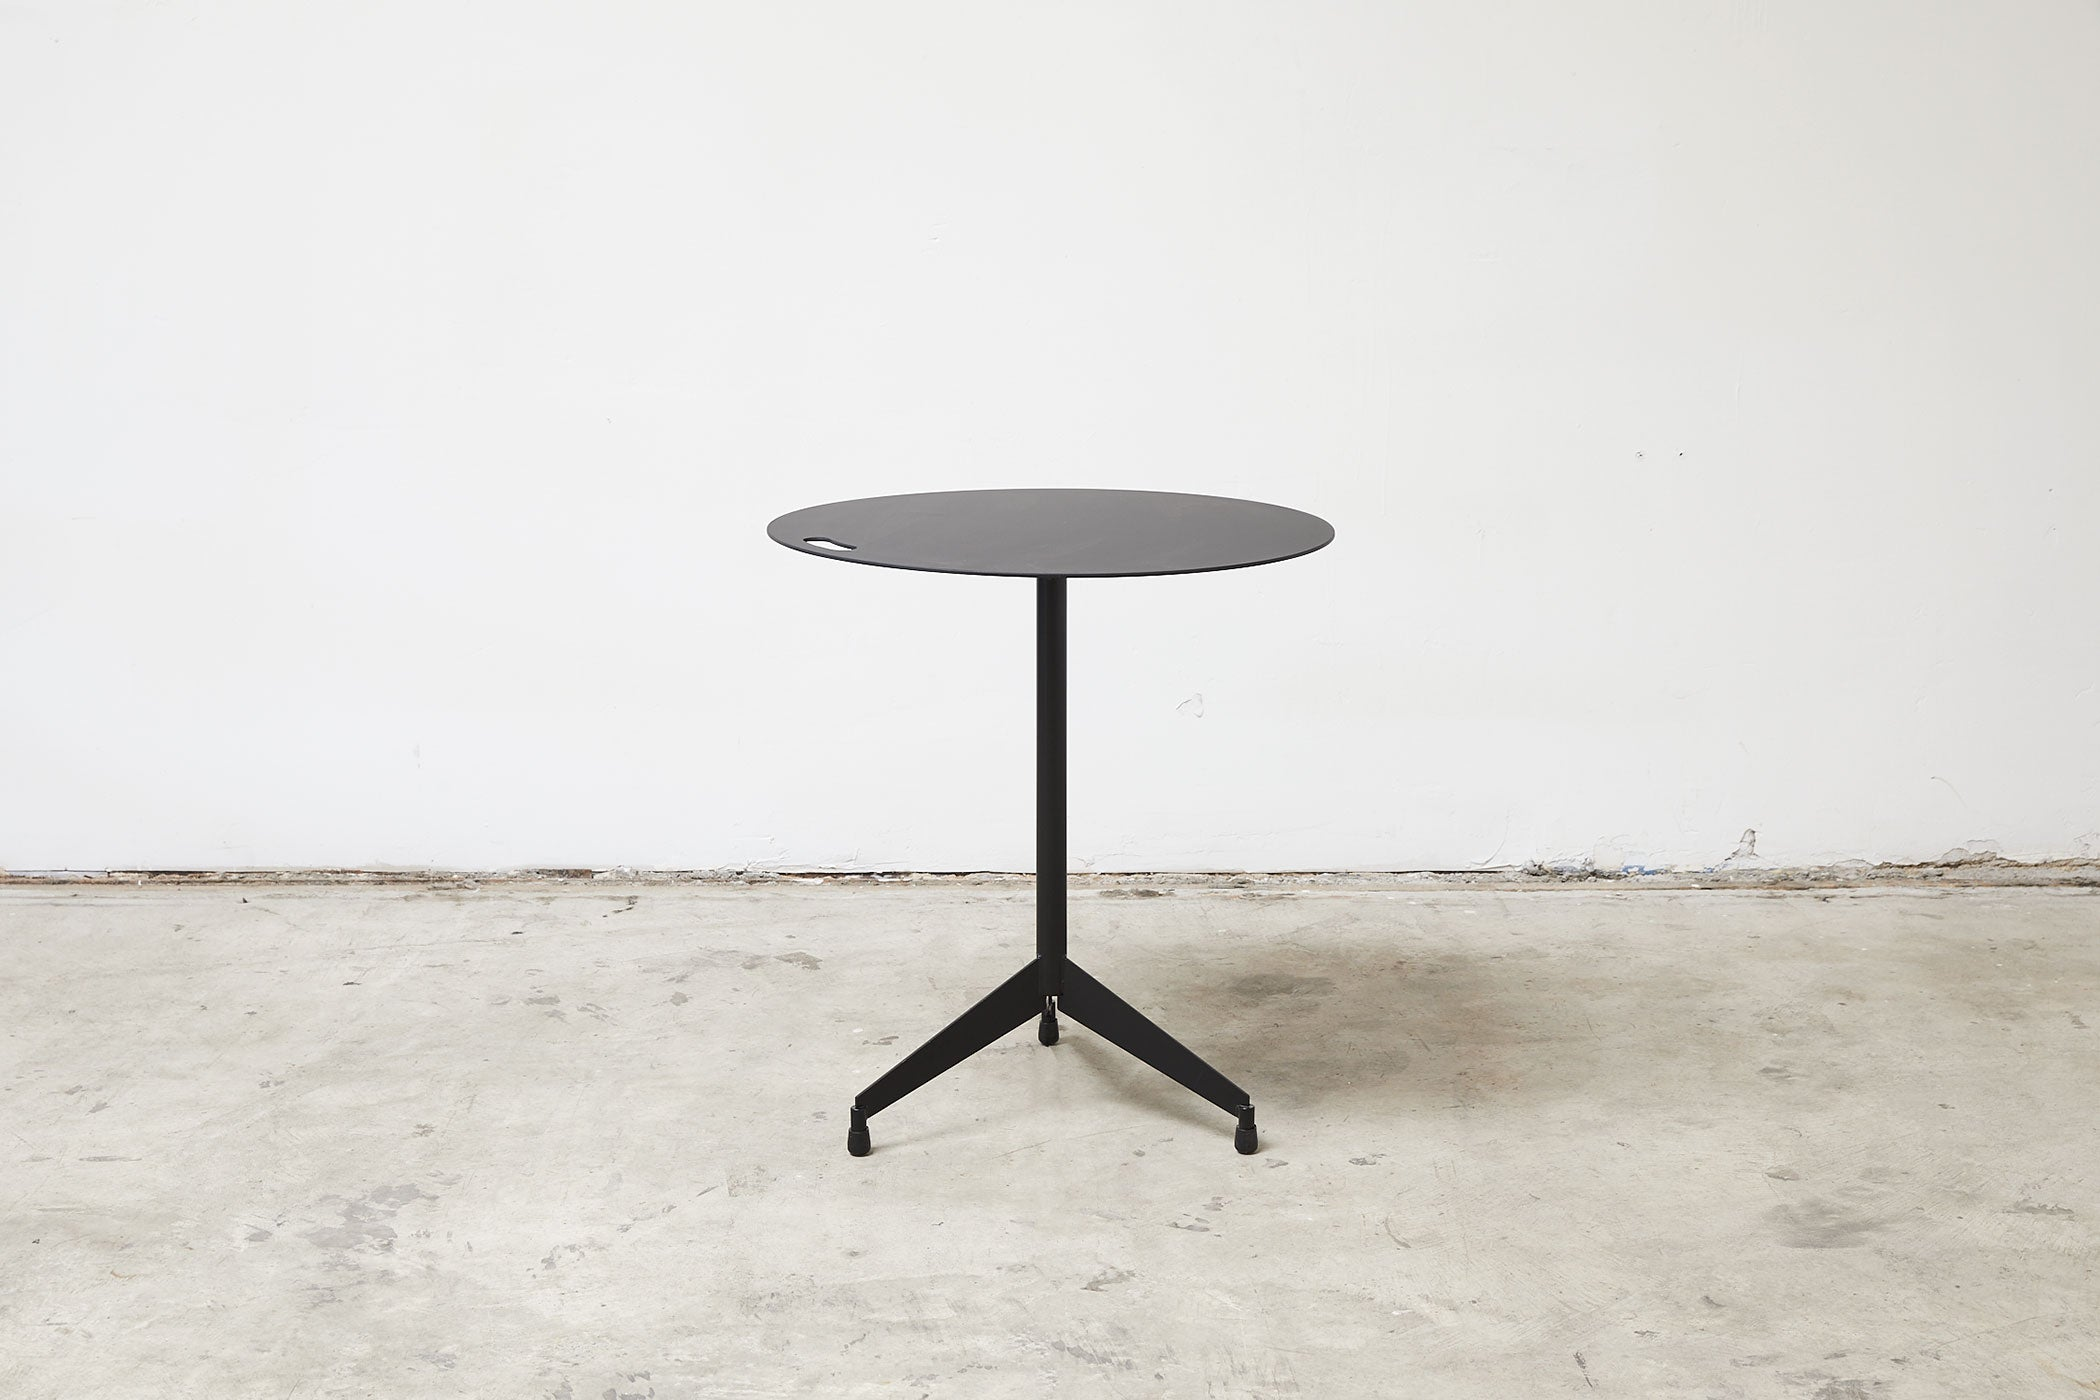 RAD Furniture's Round Aluminum-Top Cafe Table for Two